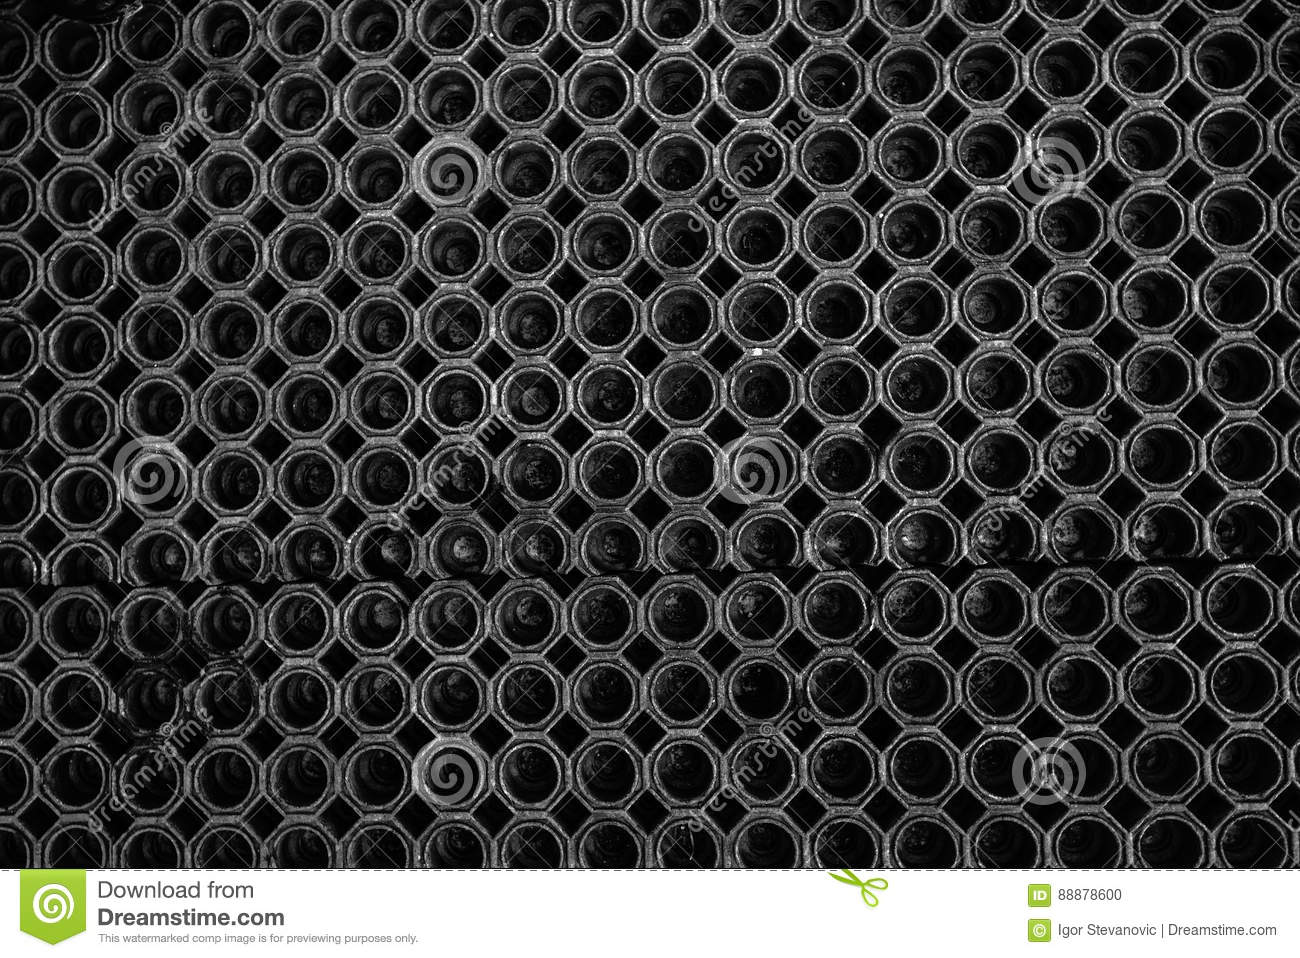 Rubber Antiskid Flooring Background Stock Photo Image Of Repeat - Anti skid flooring material